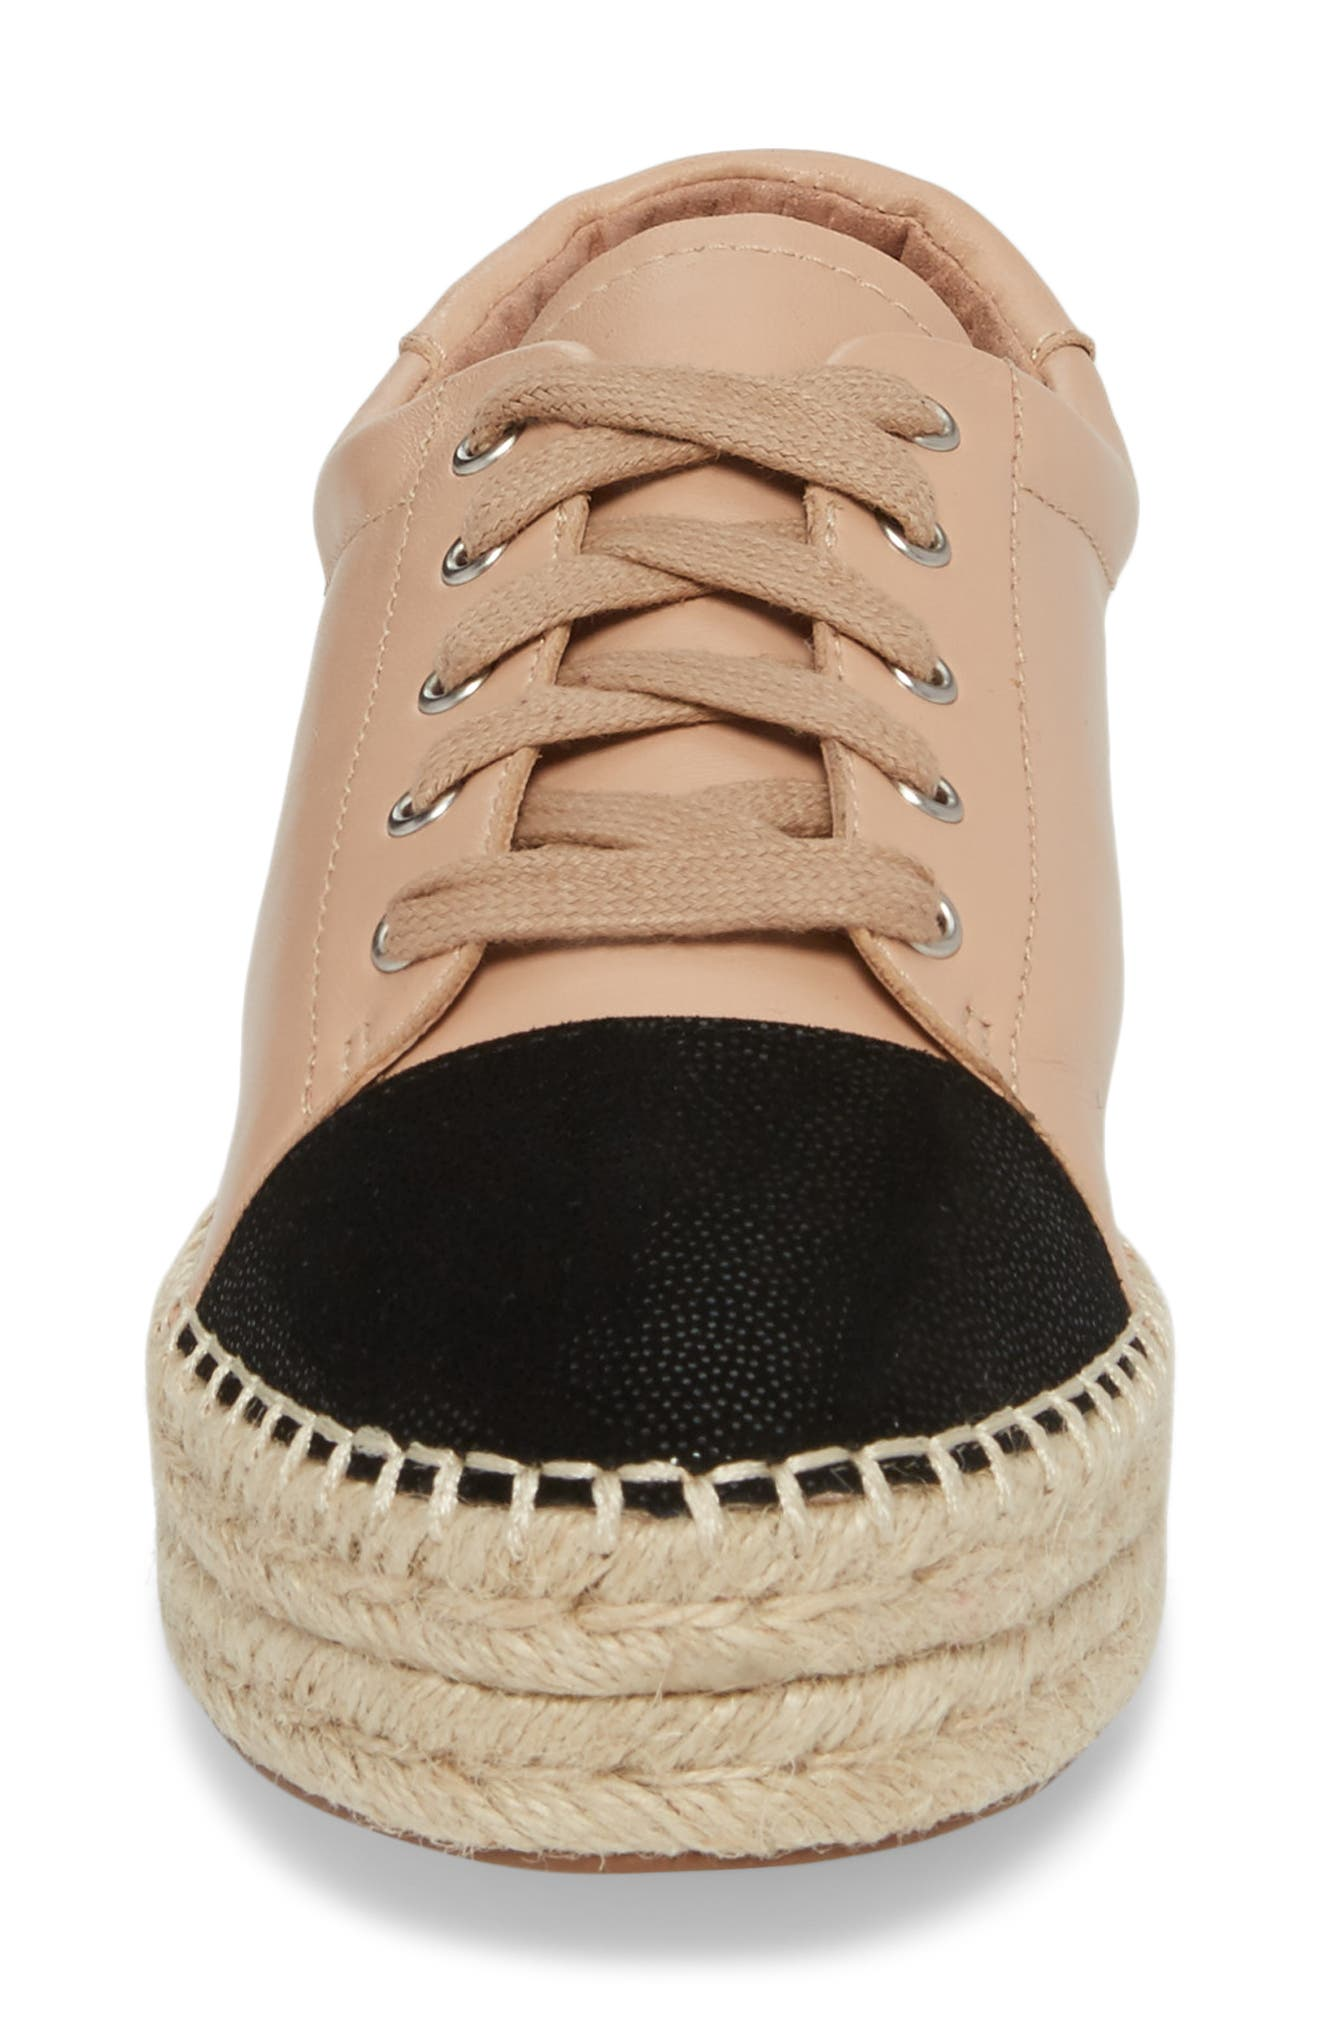 Sierra Espadrille Platform Sneaker,                             Alternate thumbnail 4, color,                             Blush/ Black Leather